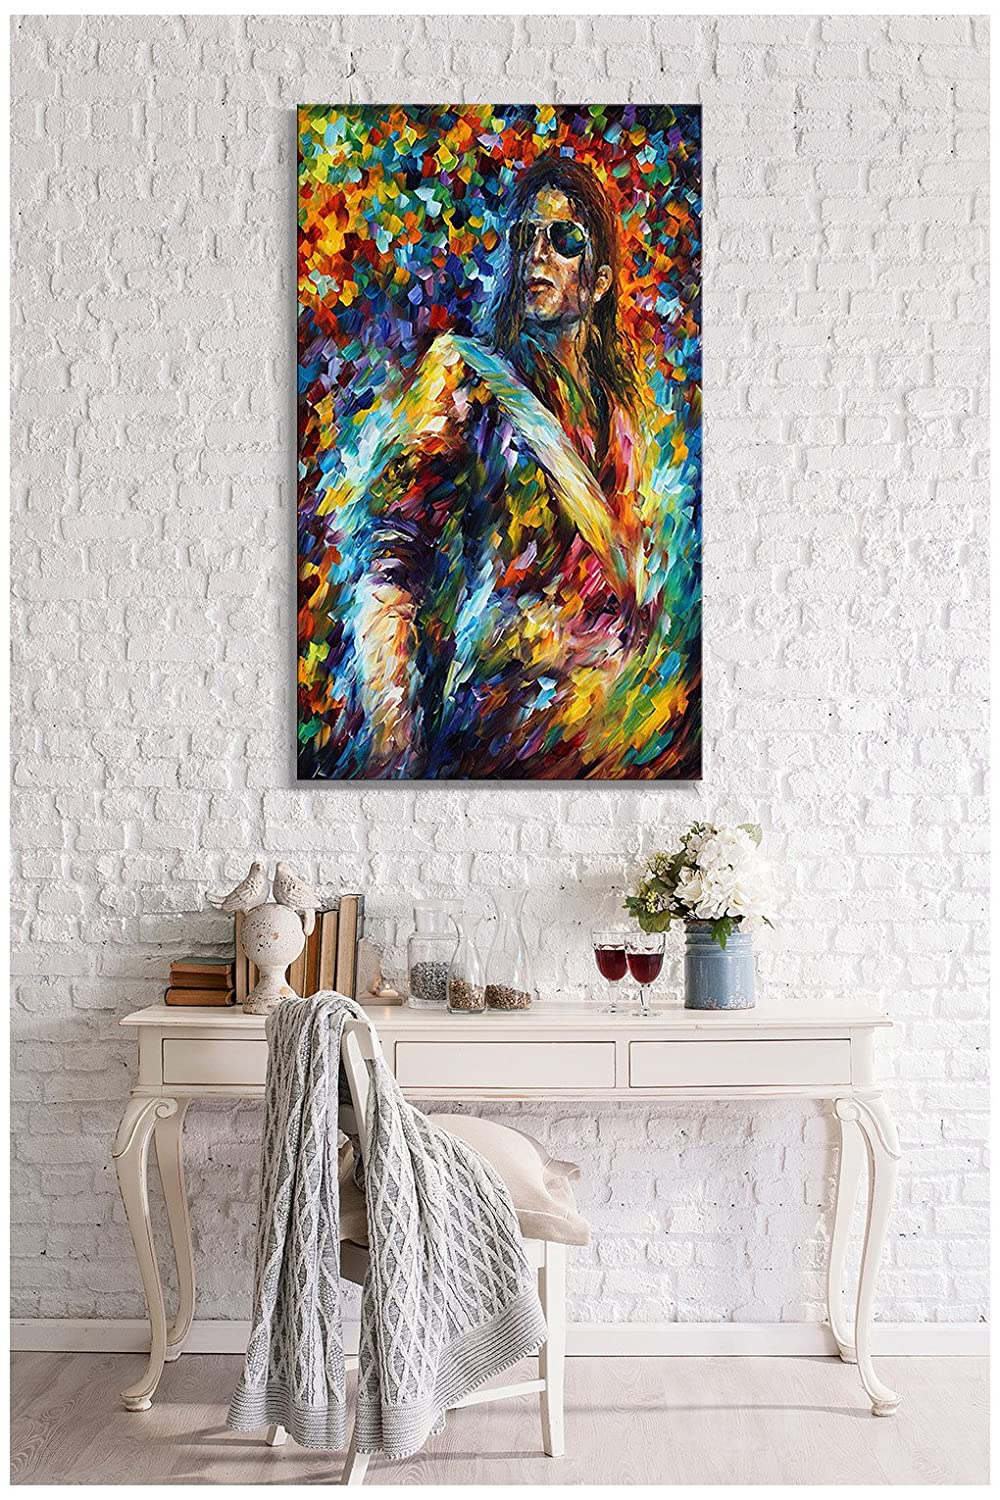 Picture Perfect International Giclee Stretched Wall Art by Leonid Afremov Michael Jackson Artists-Canvas 18 x 30 x 1